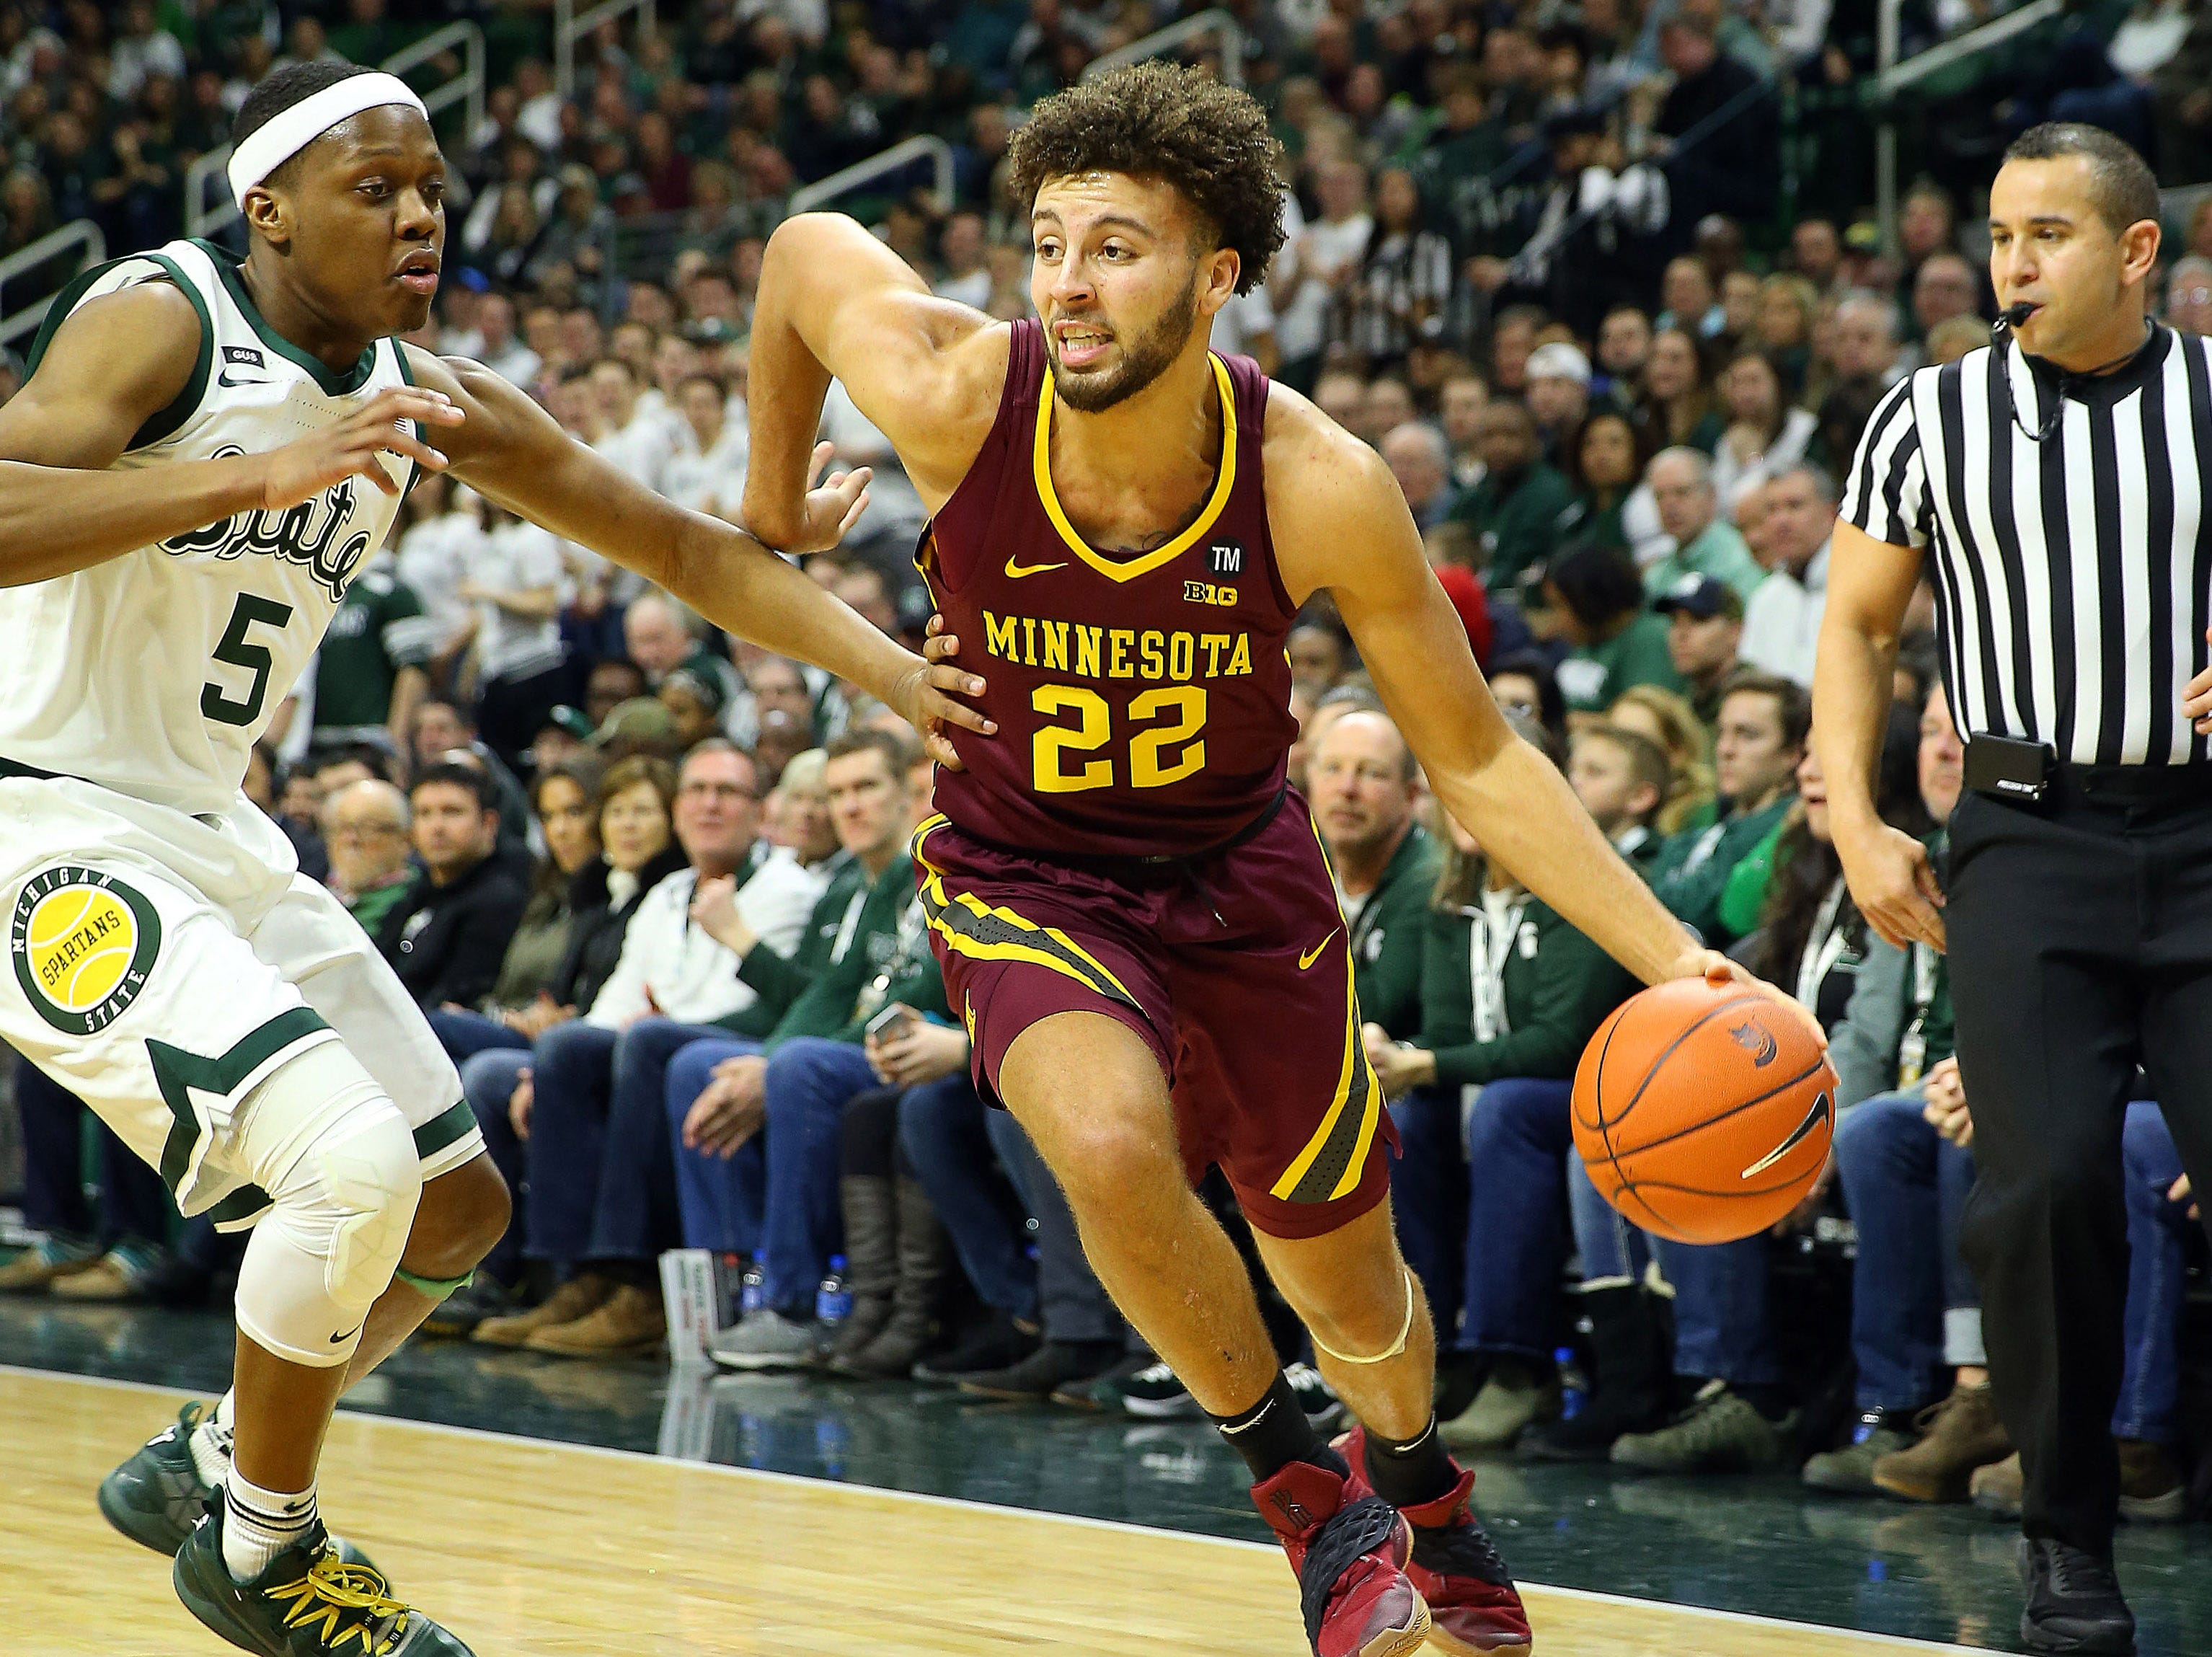 Feb 9, 2019; East Lansing, MI, USA; Minnesota Golden Gophers guard Gabe Kalscheur (22) drives to the basket against Michigan State Spartans guard Cassius Winston (5) during the first half at the Breslin Center. Mandatory Credit: Mike Carter-USA TODAY Sports